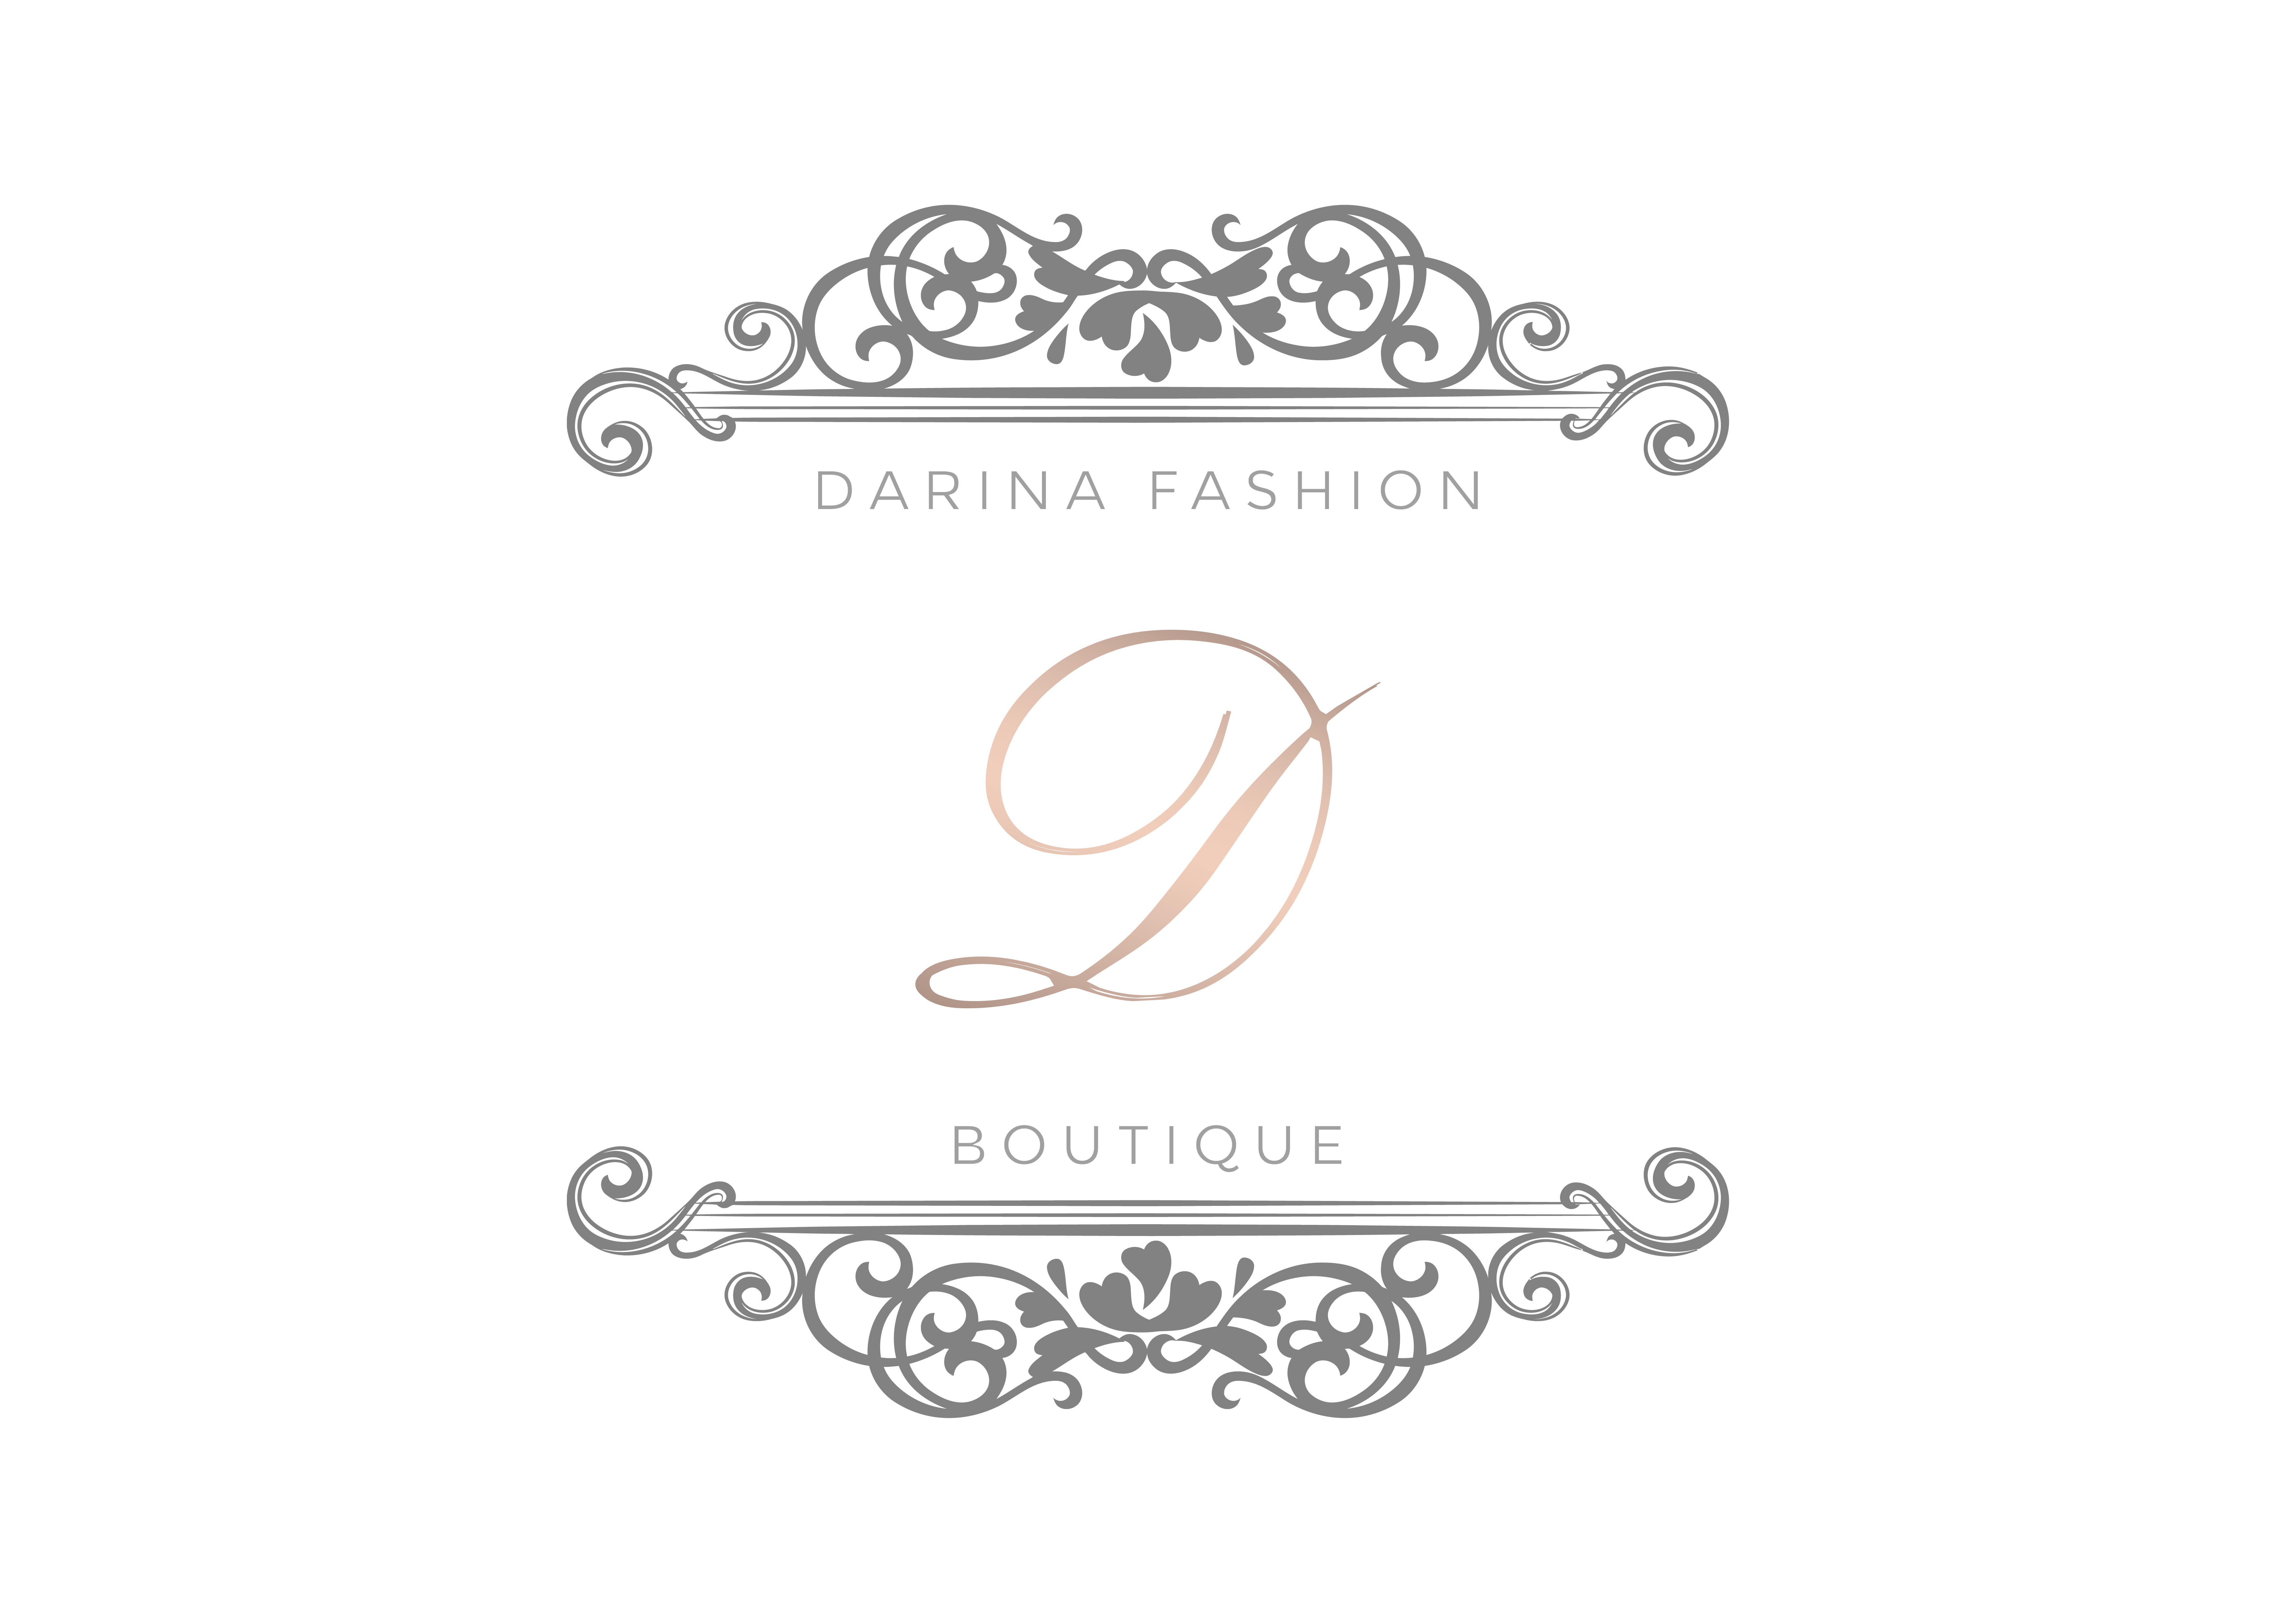 Darinafashion.cz